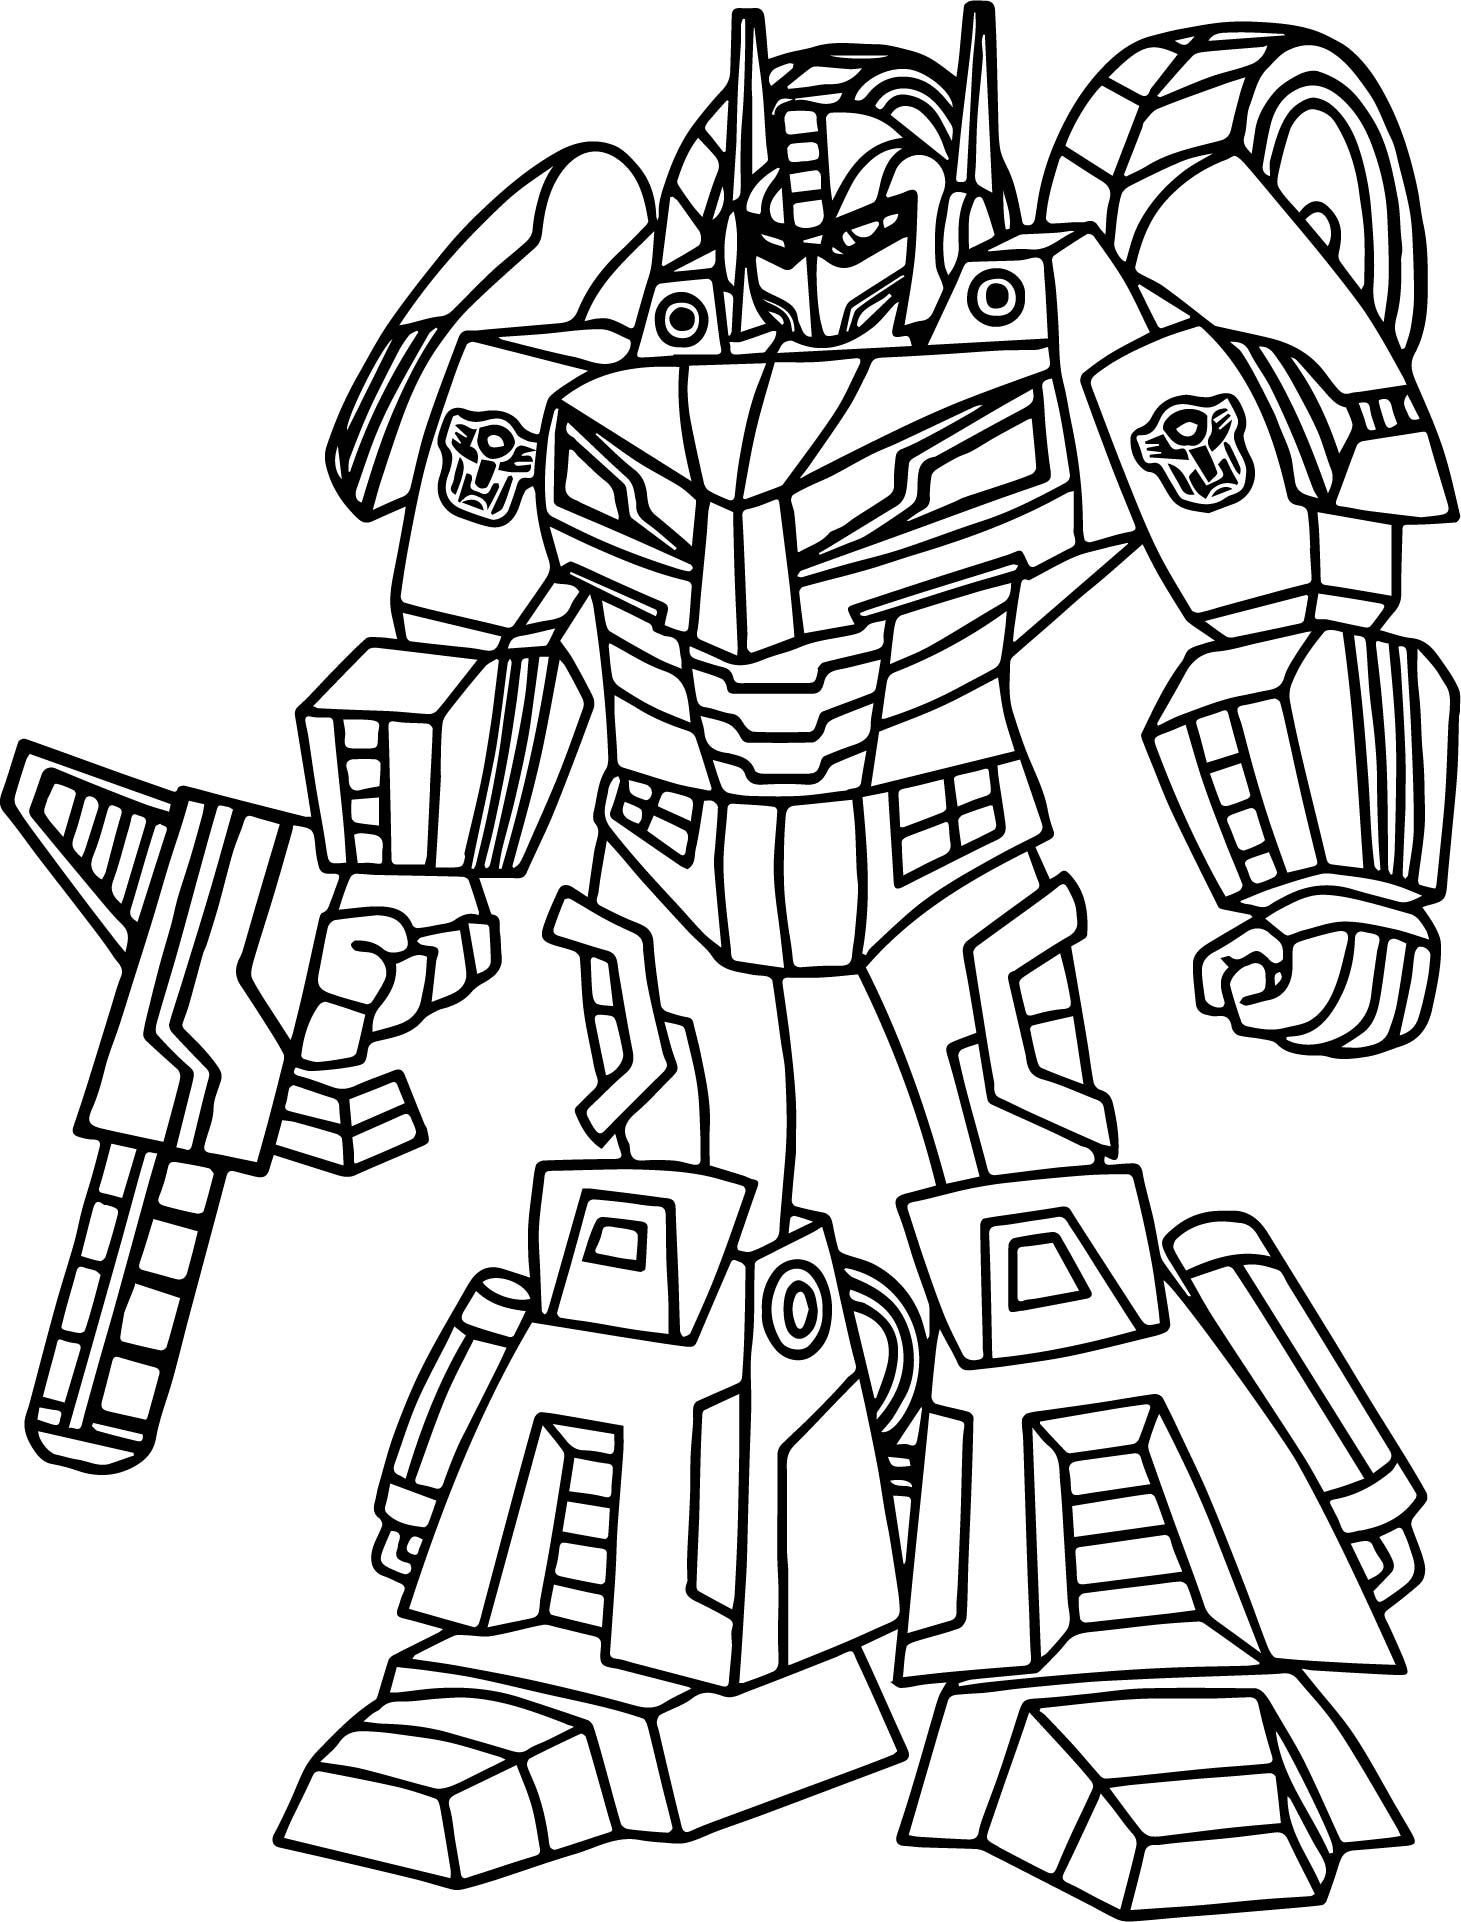 Uncategorized Transformers Coloring Games outline transformers coloring page wecoloringpage page